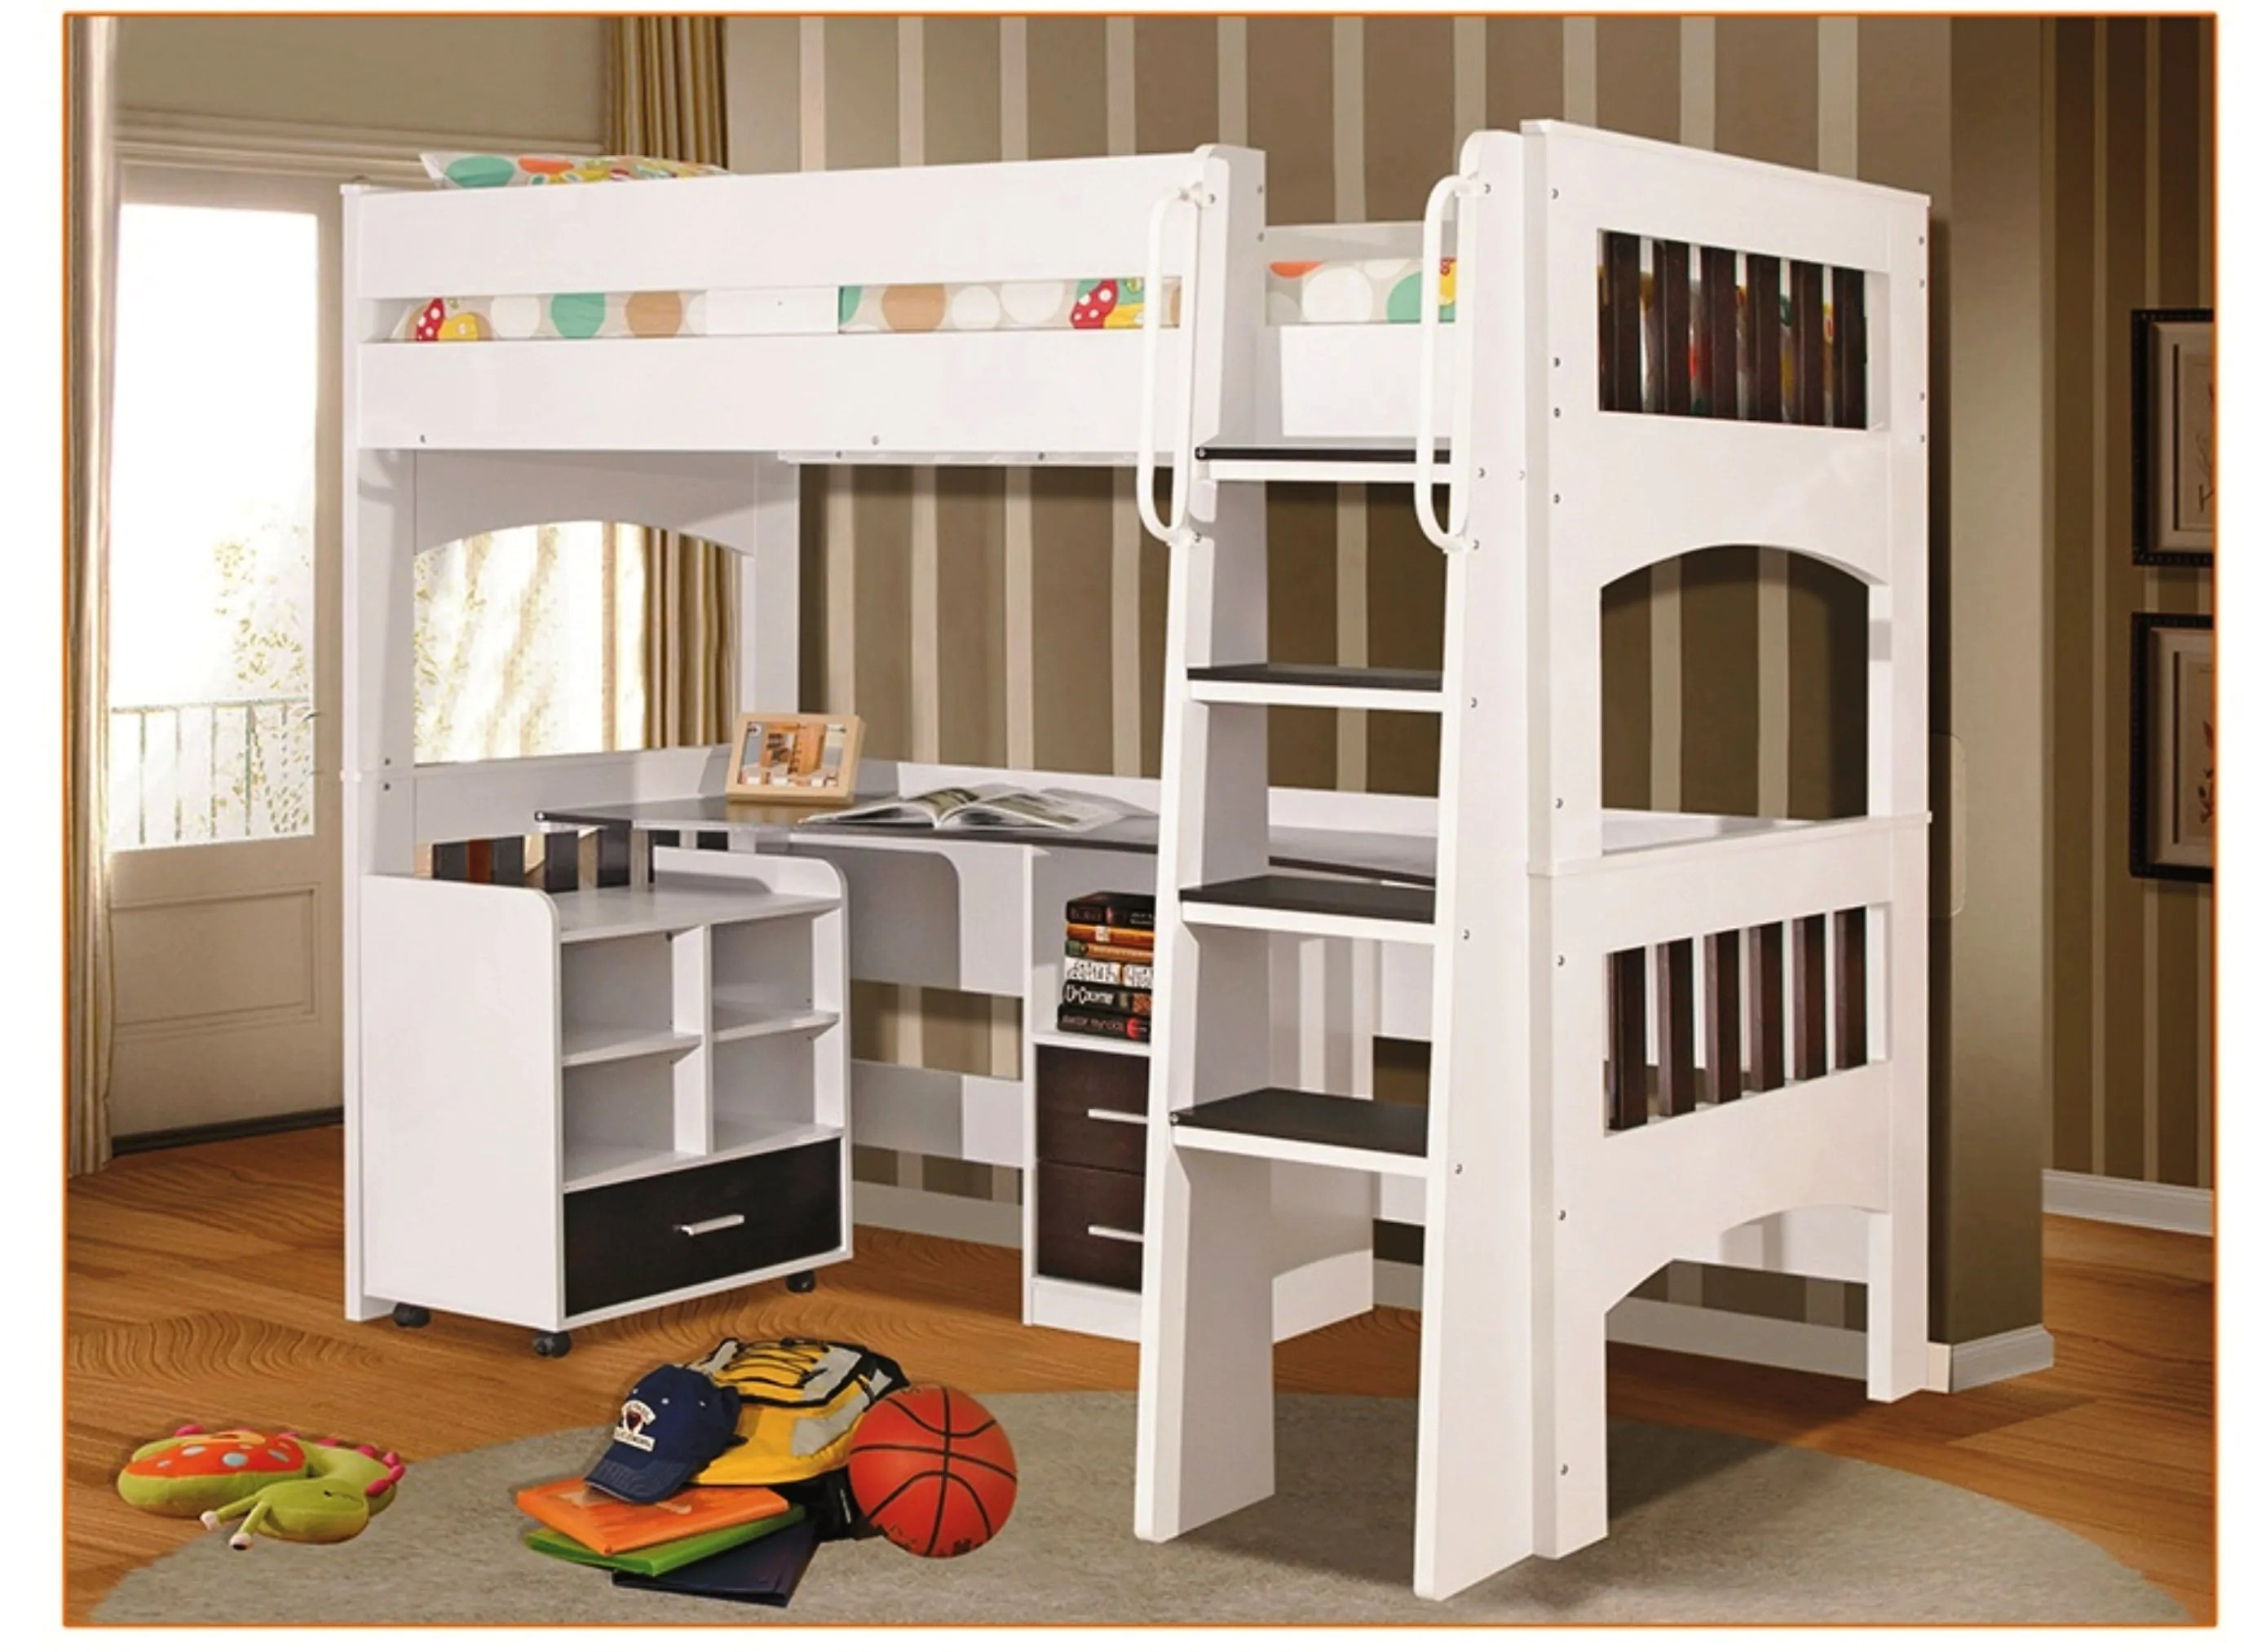 Double Bunk Bed With Desk Miami Single Loft Bunk